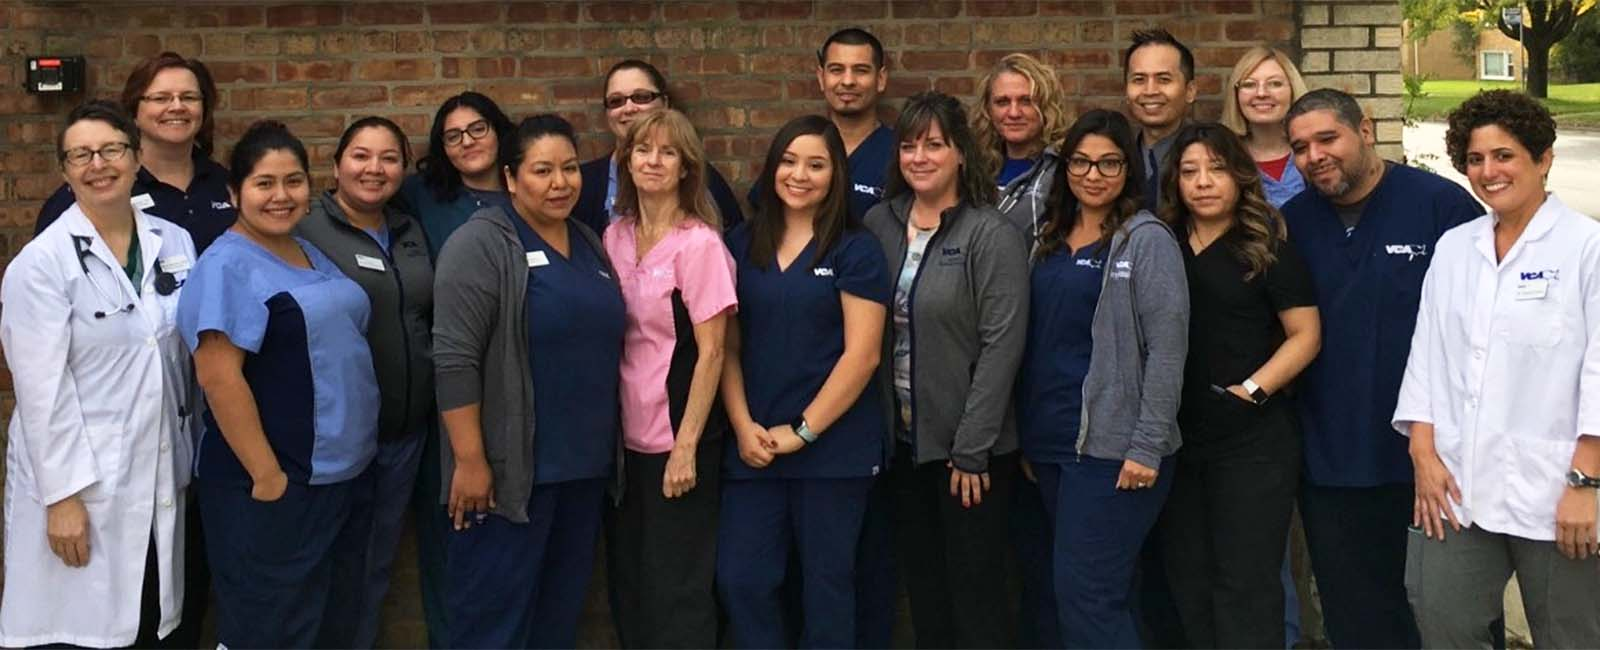 Homepage Team Picture of VCA Berwyn Animal Hospital